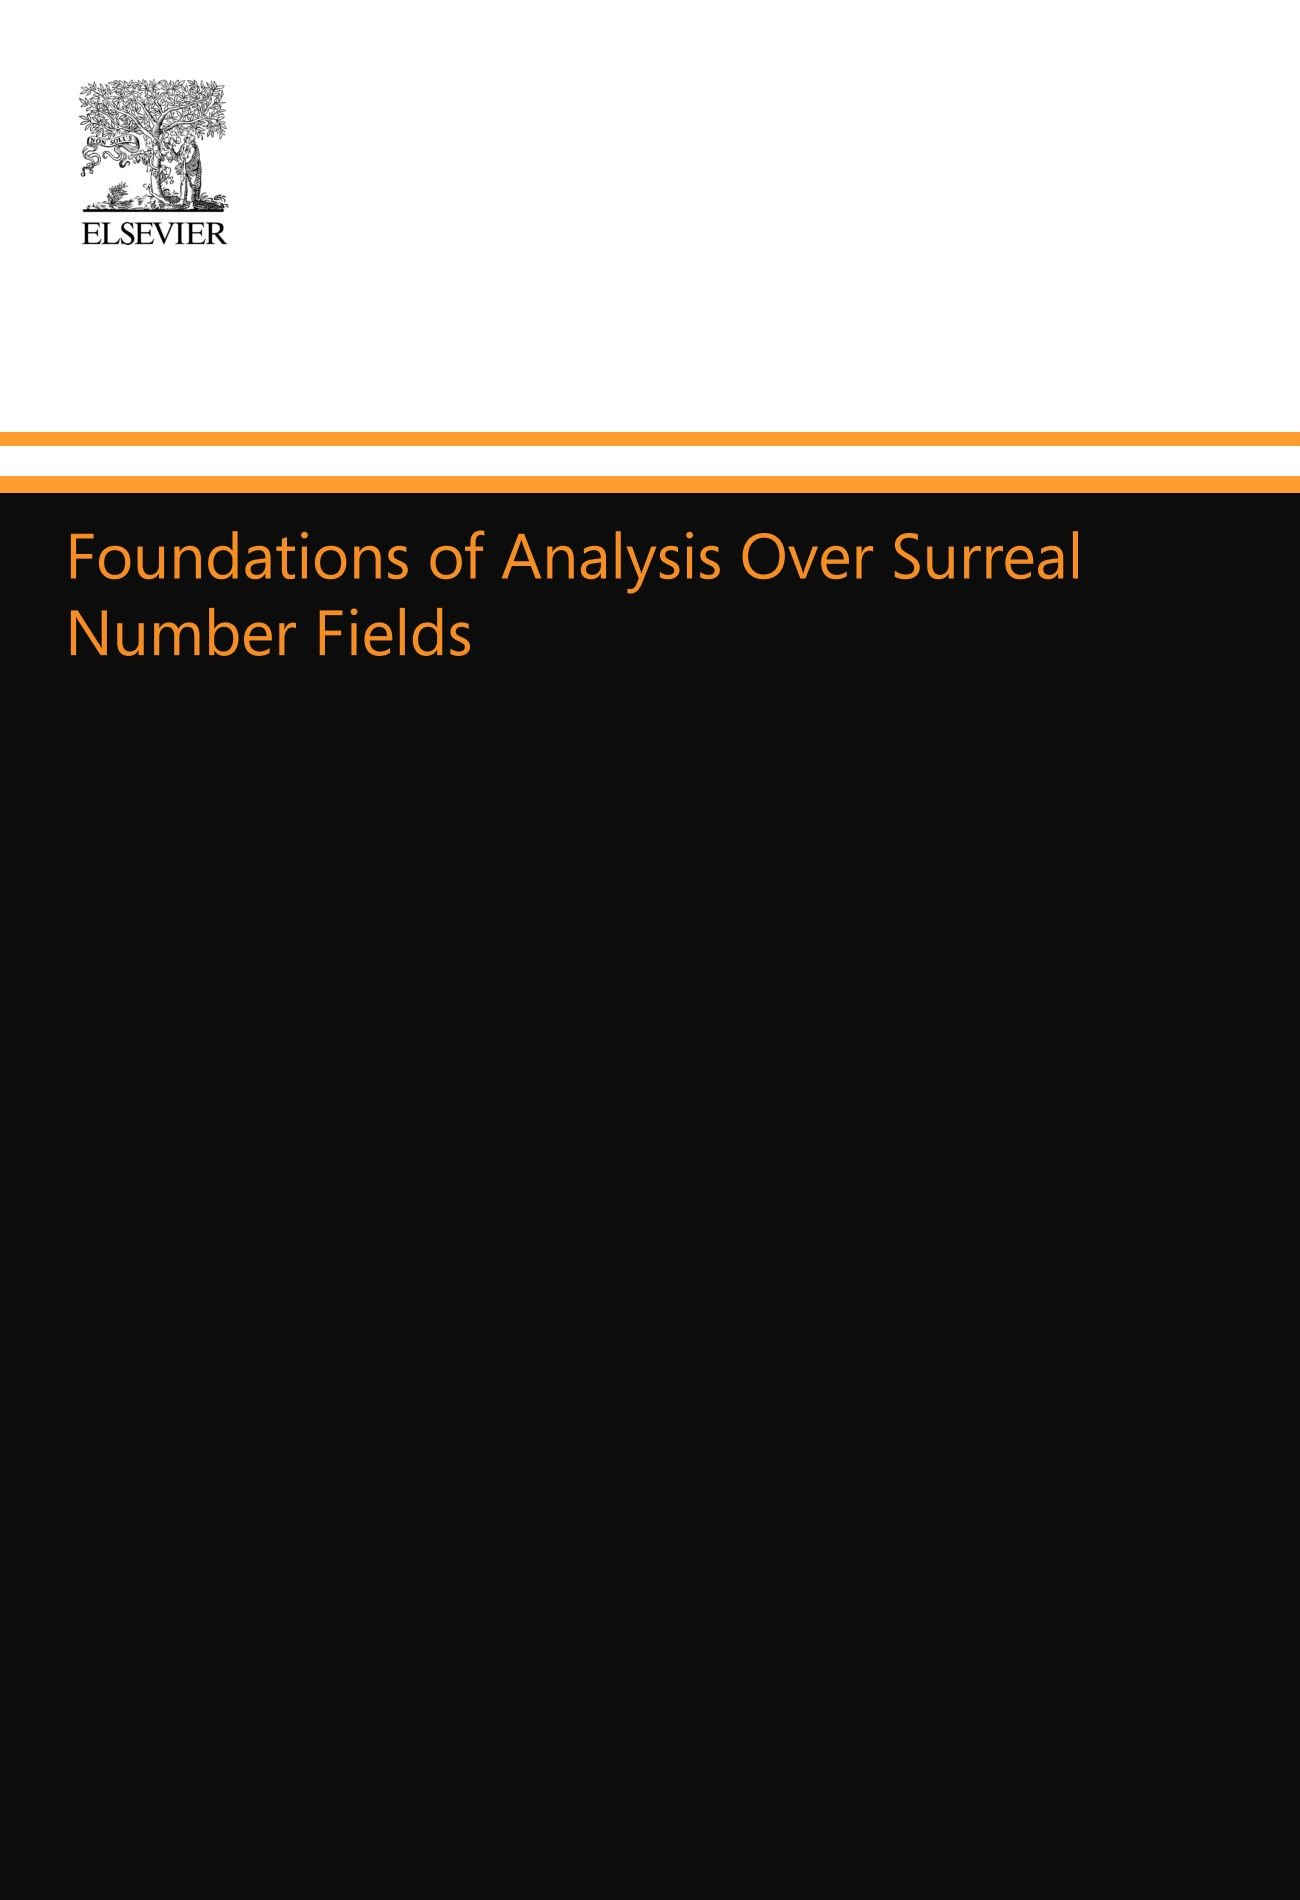 Foundations of Analysis Over Surreal Number Fields: Norman L